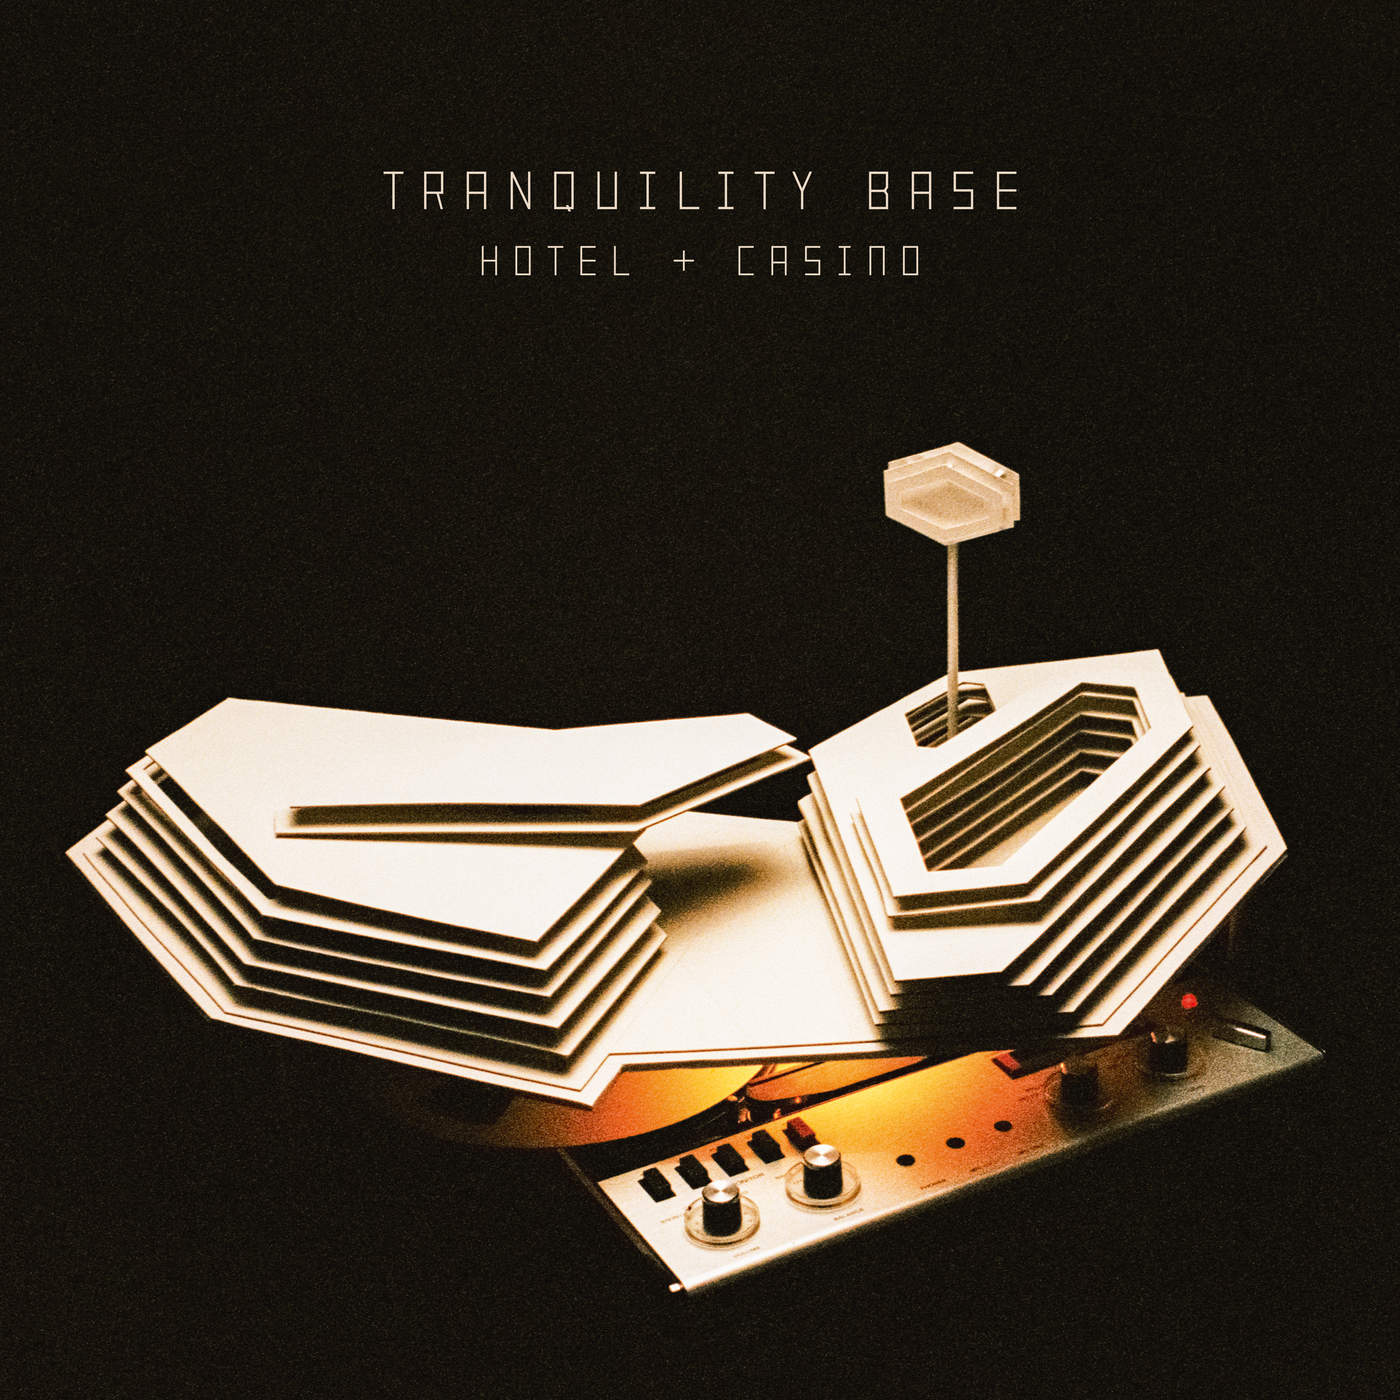 2. Tranquility Base Hotel & Casino - Arctic Monkeys - While my review of Lala Lala's The Lamb was the first album review that I posted on this blog, I credit this album for being the reason why I wanted to start writing album reviews and blog posts in the first place. I love concept albums, from Rush's 1977 album 2112, to King Gizzard & The Lizard Wizard's Murder Of The Universe in 2017. Tranquility Base Hotel & Casino grabbed my attention and took me on a journey every time I listened to it.